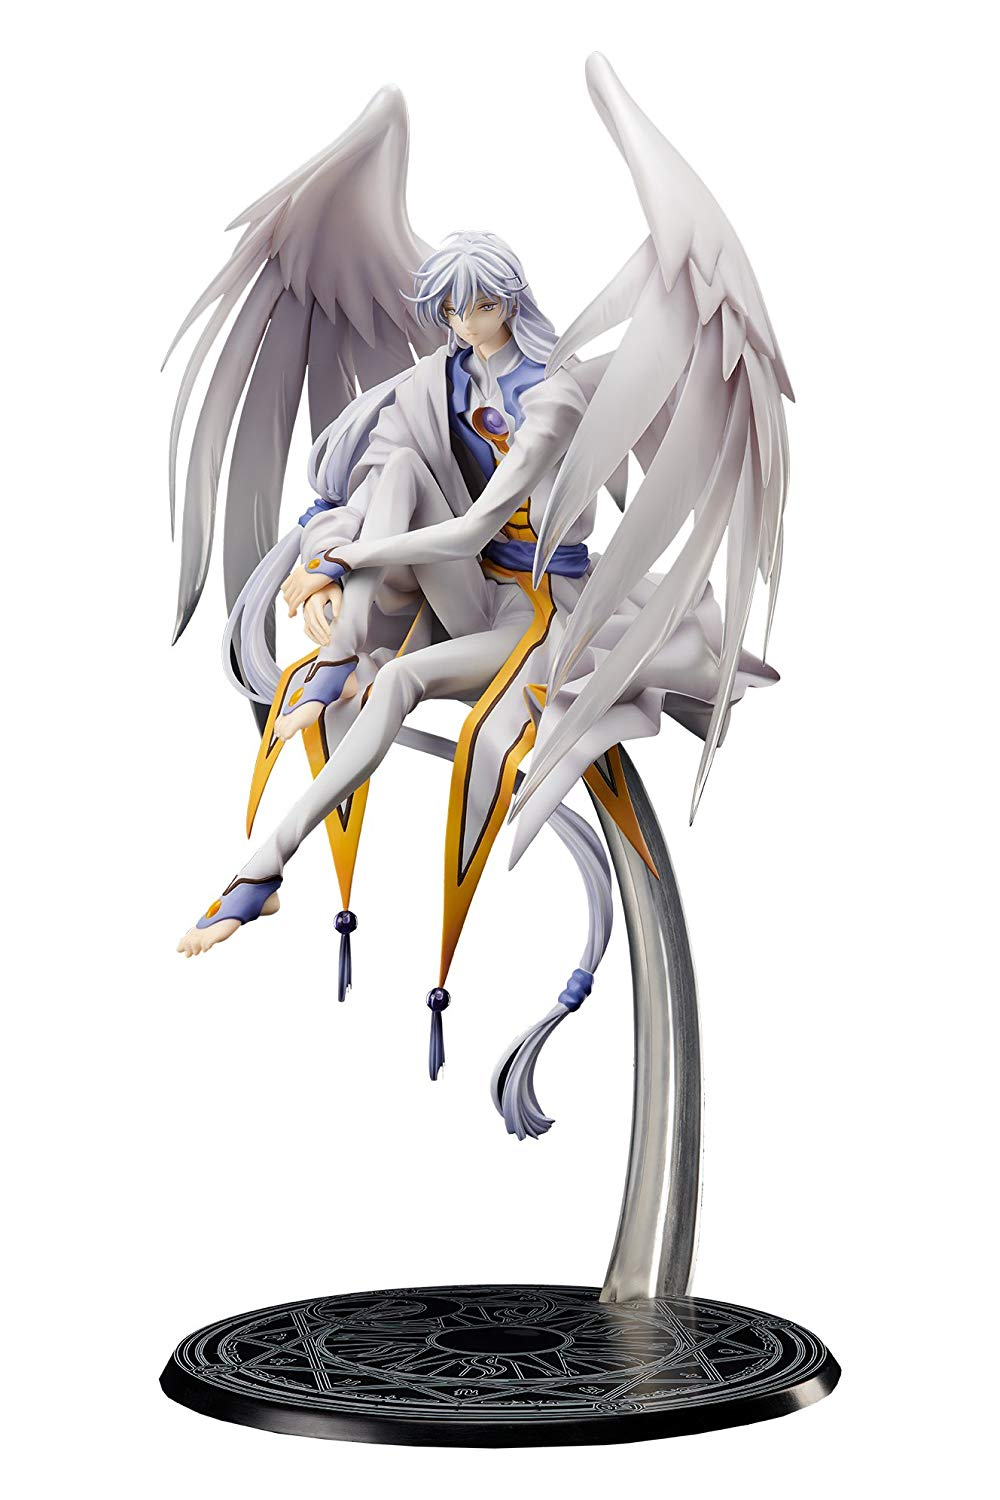 Moon (Yue) 1 / 8 scale ABS & PVC pre-painted completed figure